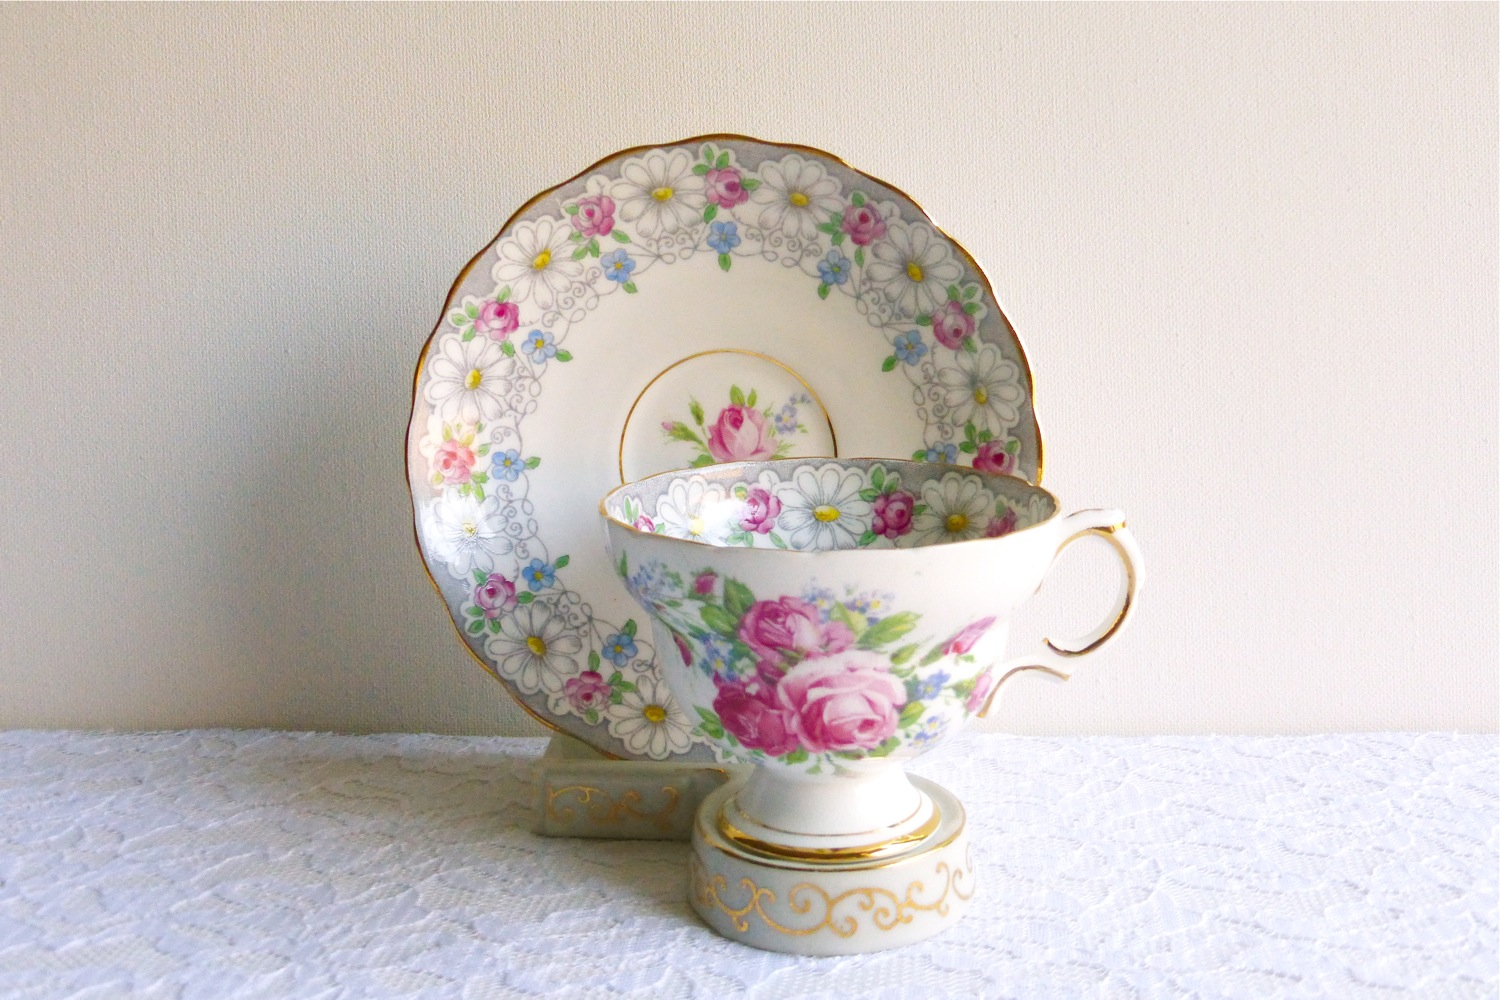 Vintage Tea Treasures, Vintage Tea Treasures on Etsy, Etsy teacup shop, vintage teacup shop, vintage Rosina teacup and saucer, vintage pastel floral teacup and saucer, vintage rose teacup, vintage English bone china teacup, vintage English daisy teacup and saucer, vintage English pastel pink rose and white daisy teacup and saucer, vintage daisy teacup and saucer, vintage lace and roses